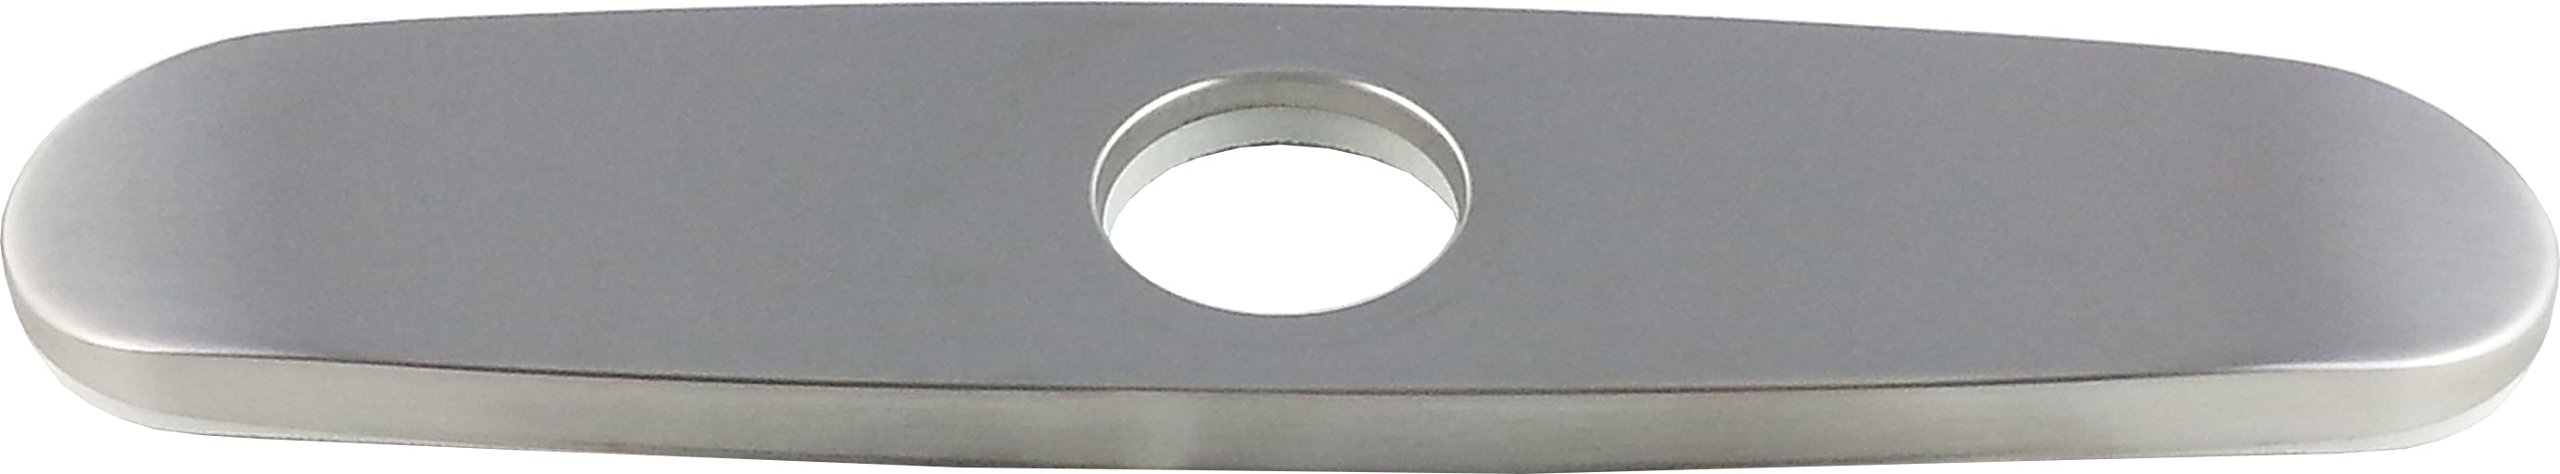 Wellington 1002bn Kitchen Sink Faucet 8 Inches Hole Cover Deck Plate, Brushed Nickel PVD